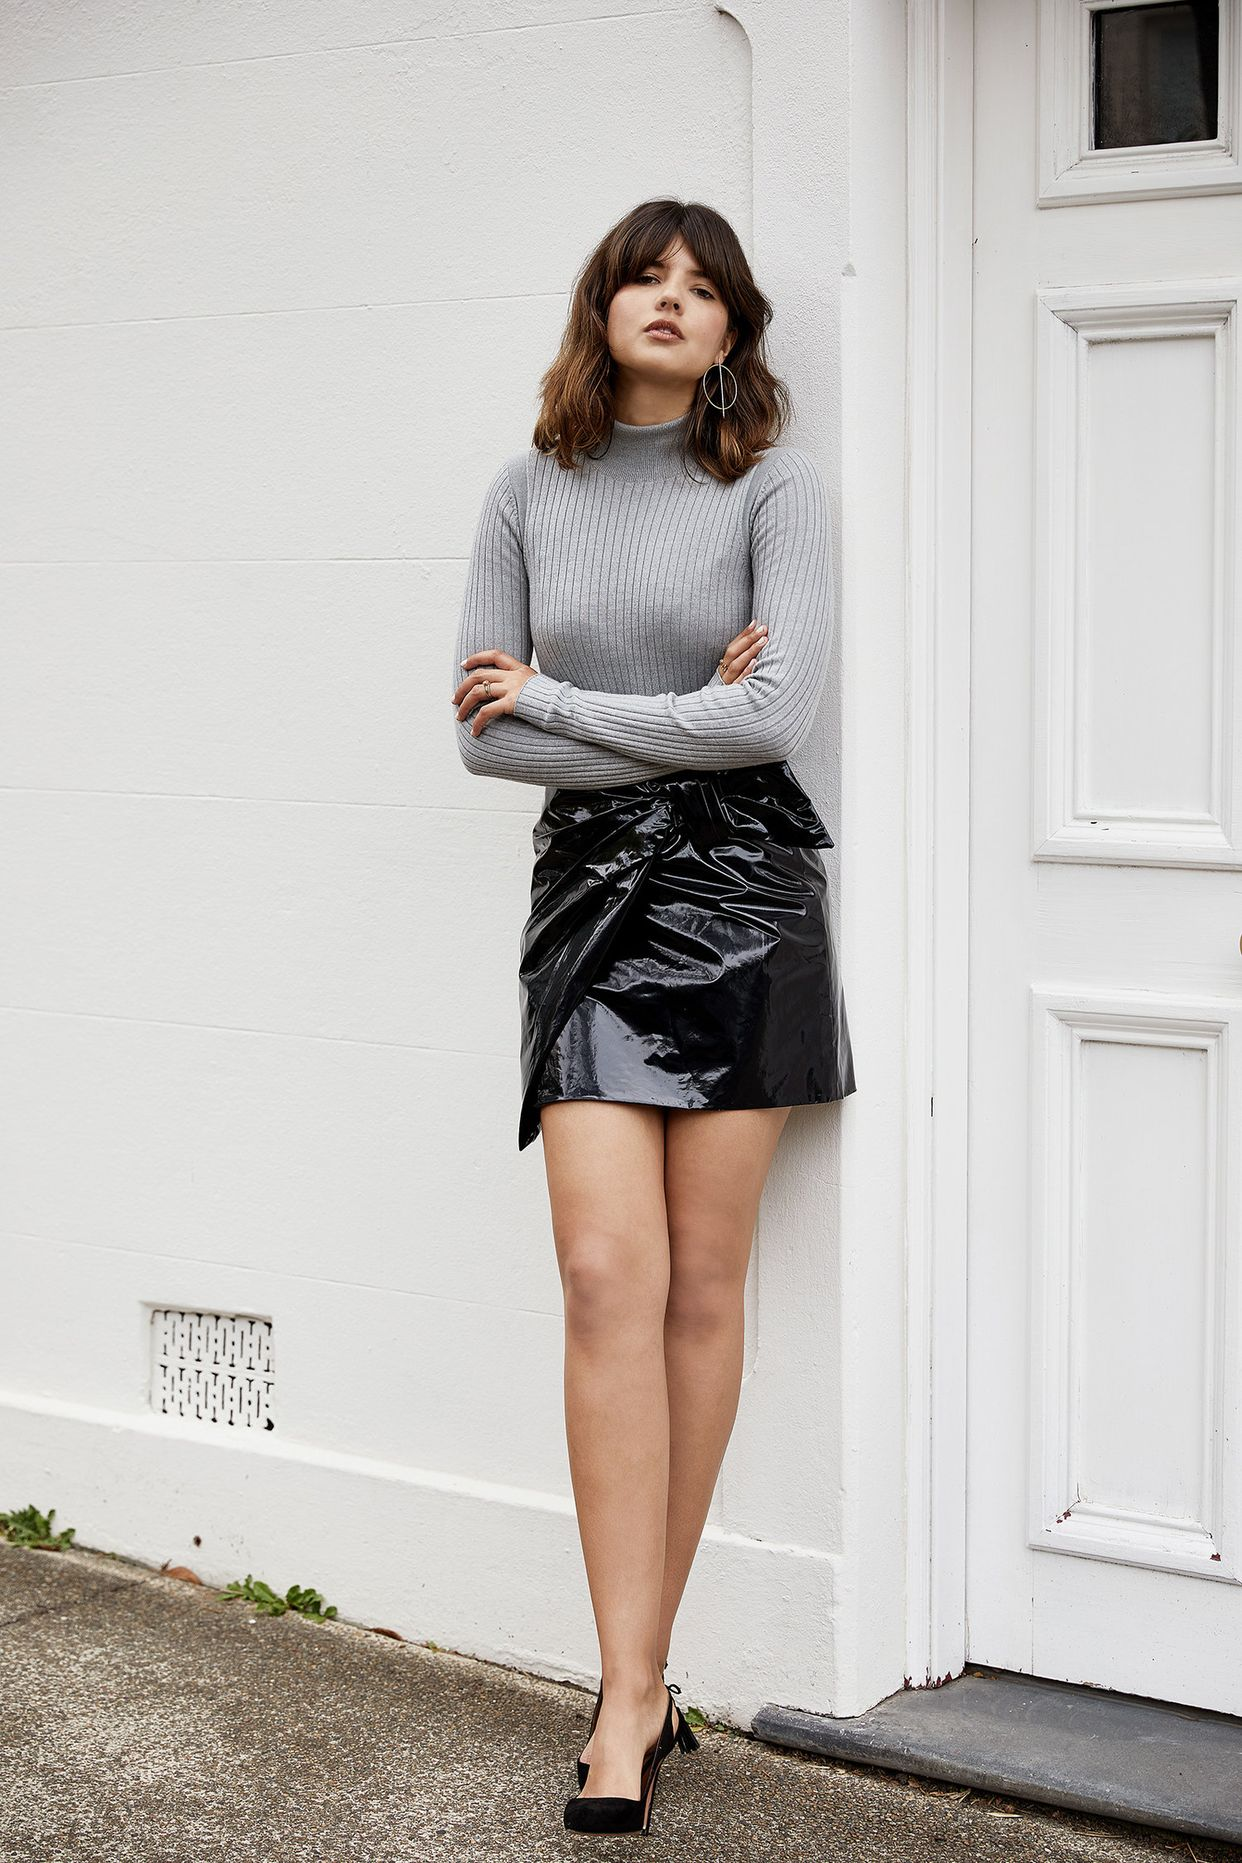 4waystowear-a-patent-leather-skirt-01.jpg